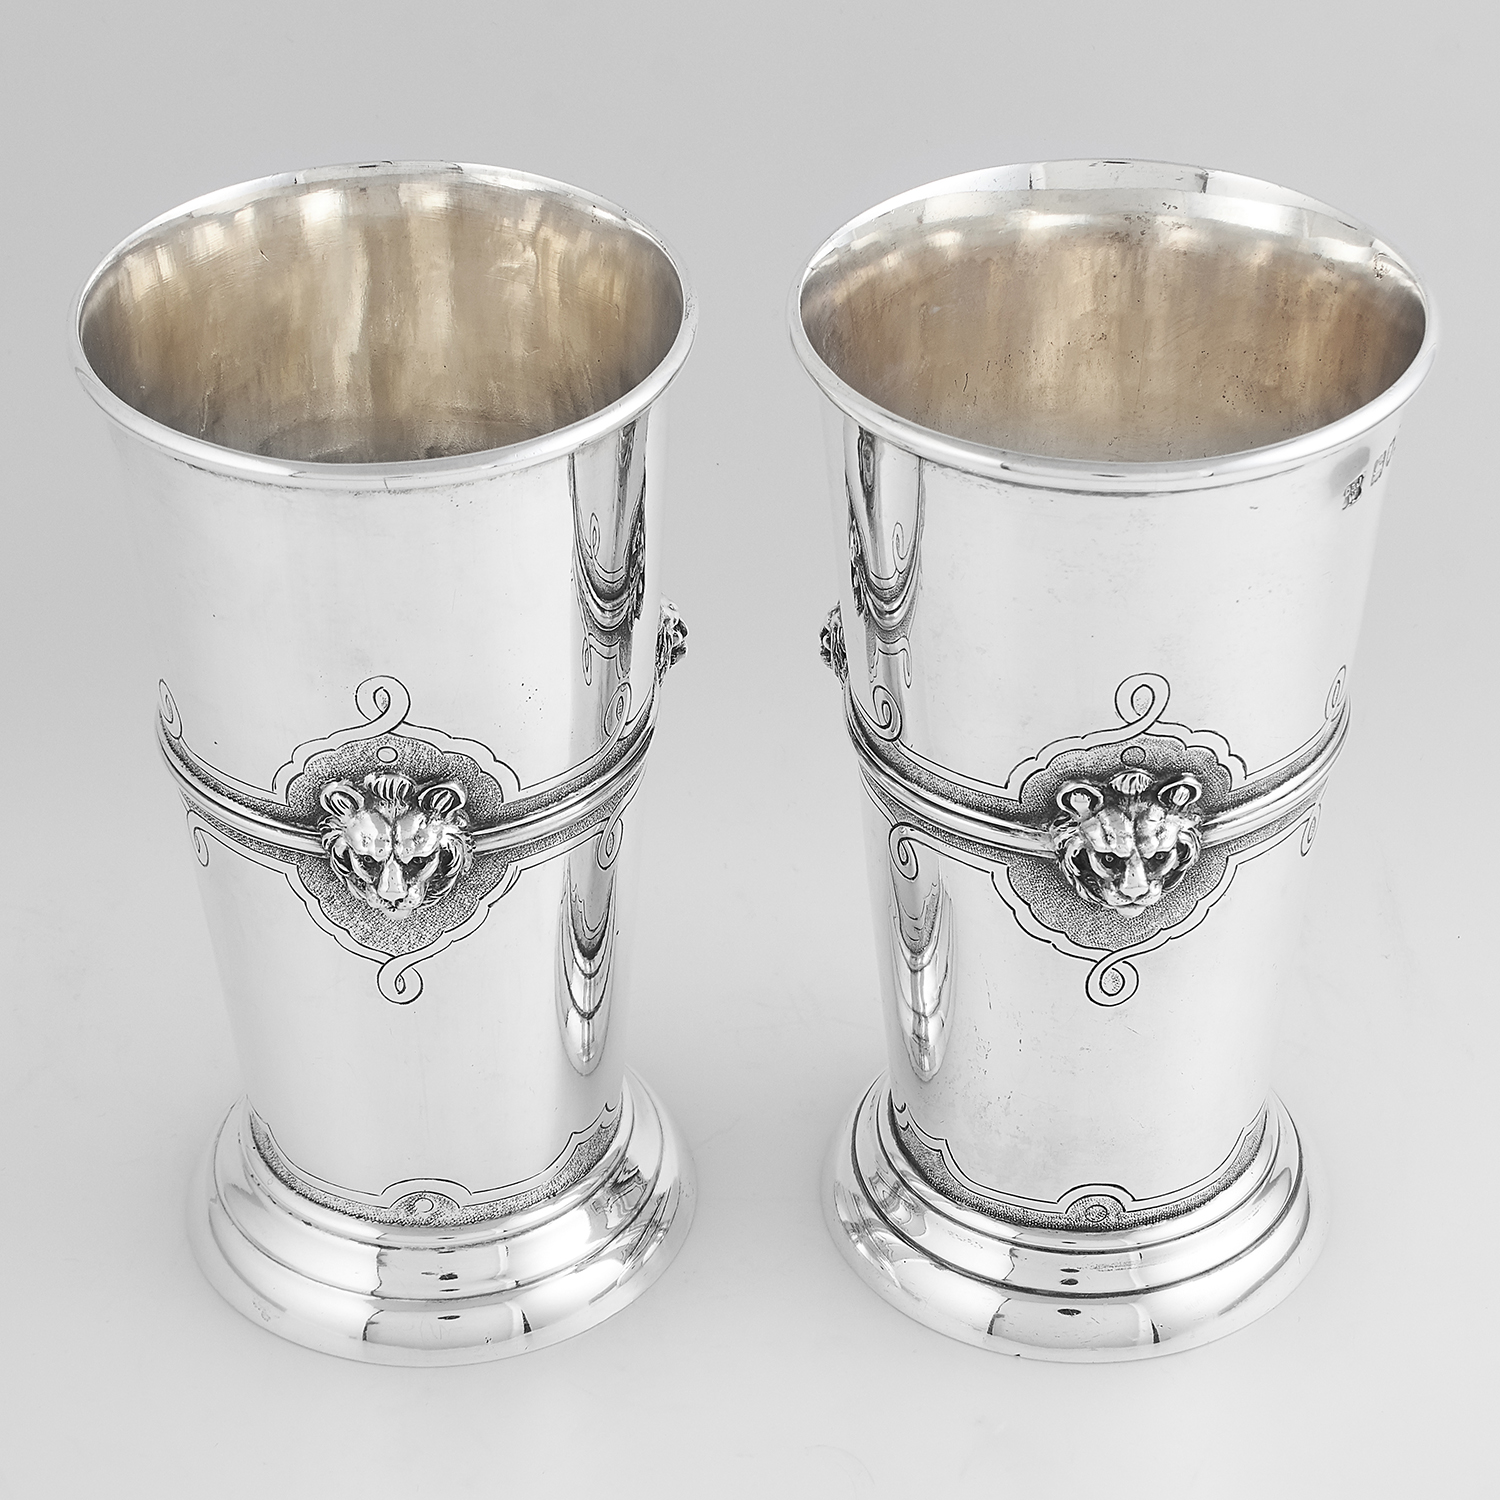 FOUR ANTIQUE STERLING SILVER BEAKERS / CUPS, D & J WELLBY, LONDON 1910 the tapering bodies with - Image 2 of 3